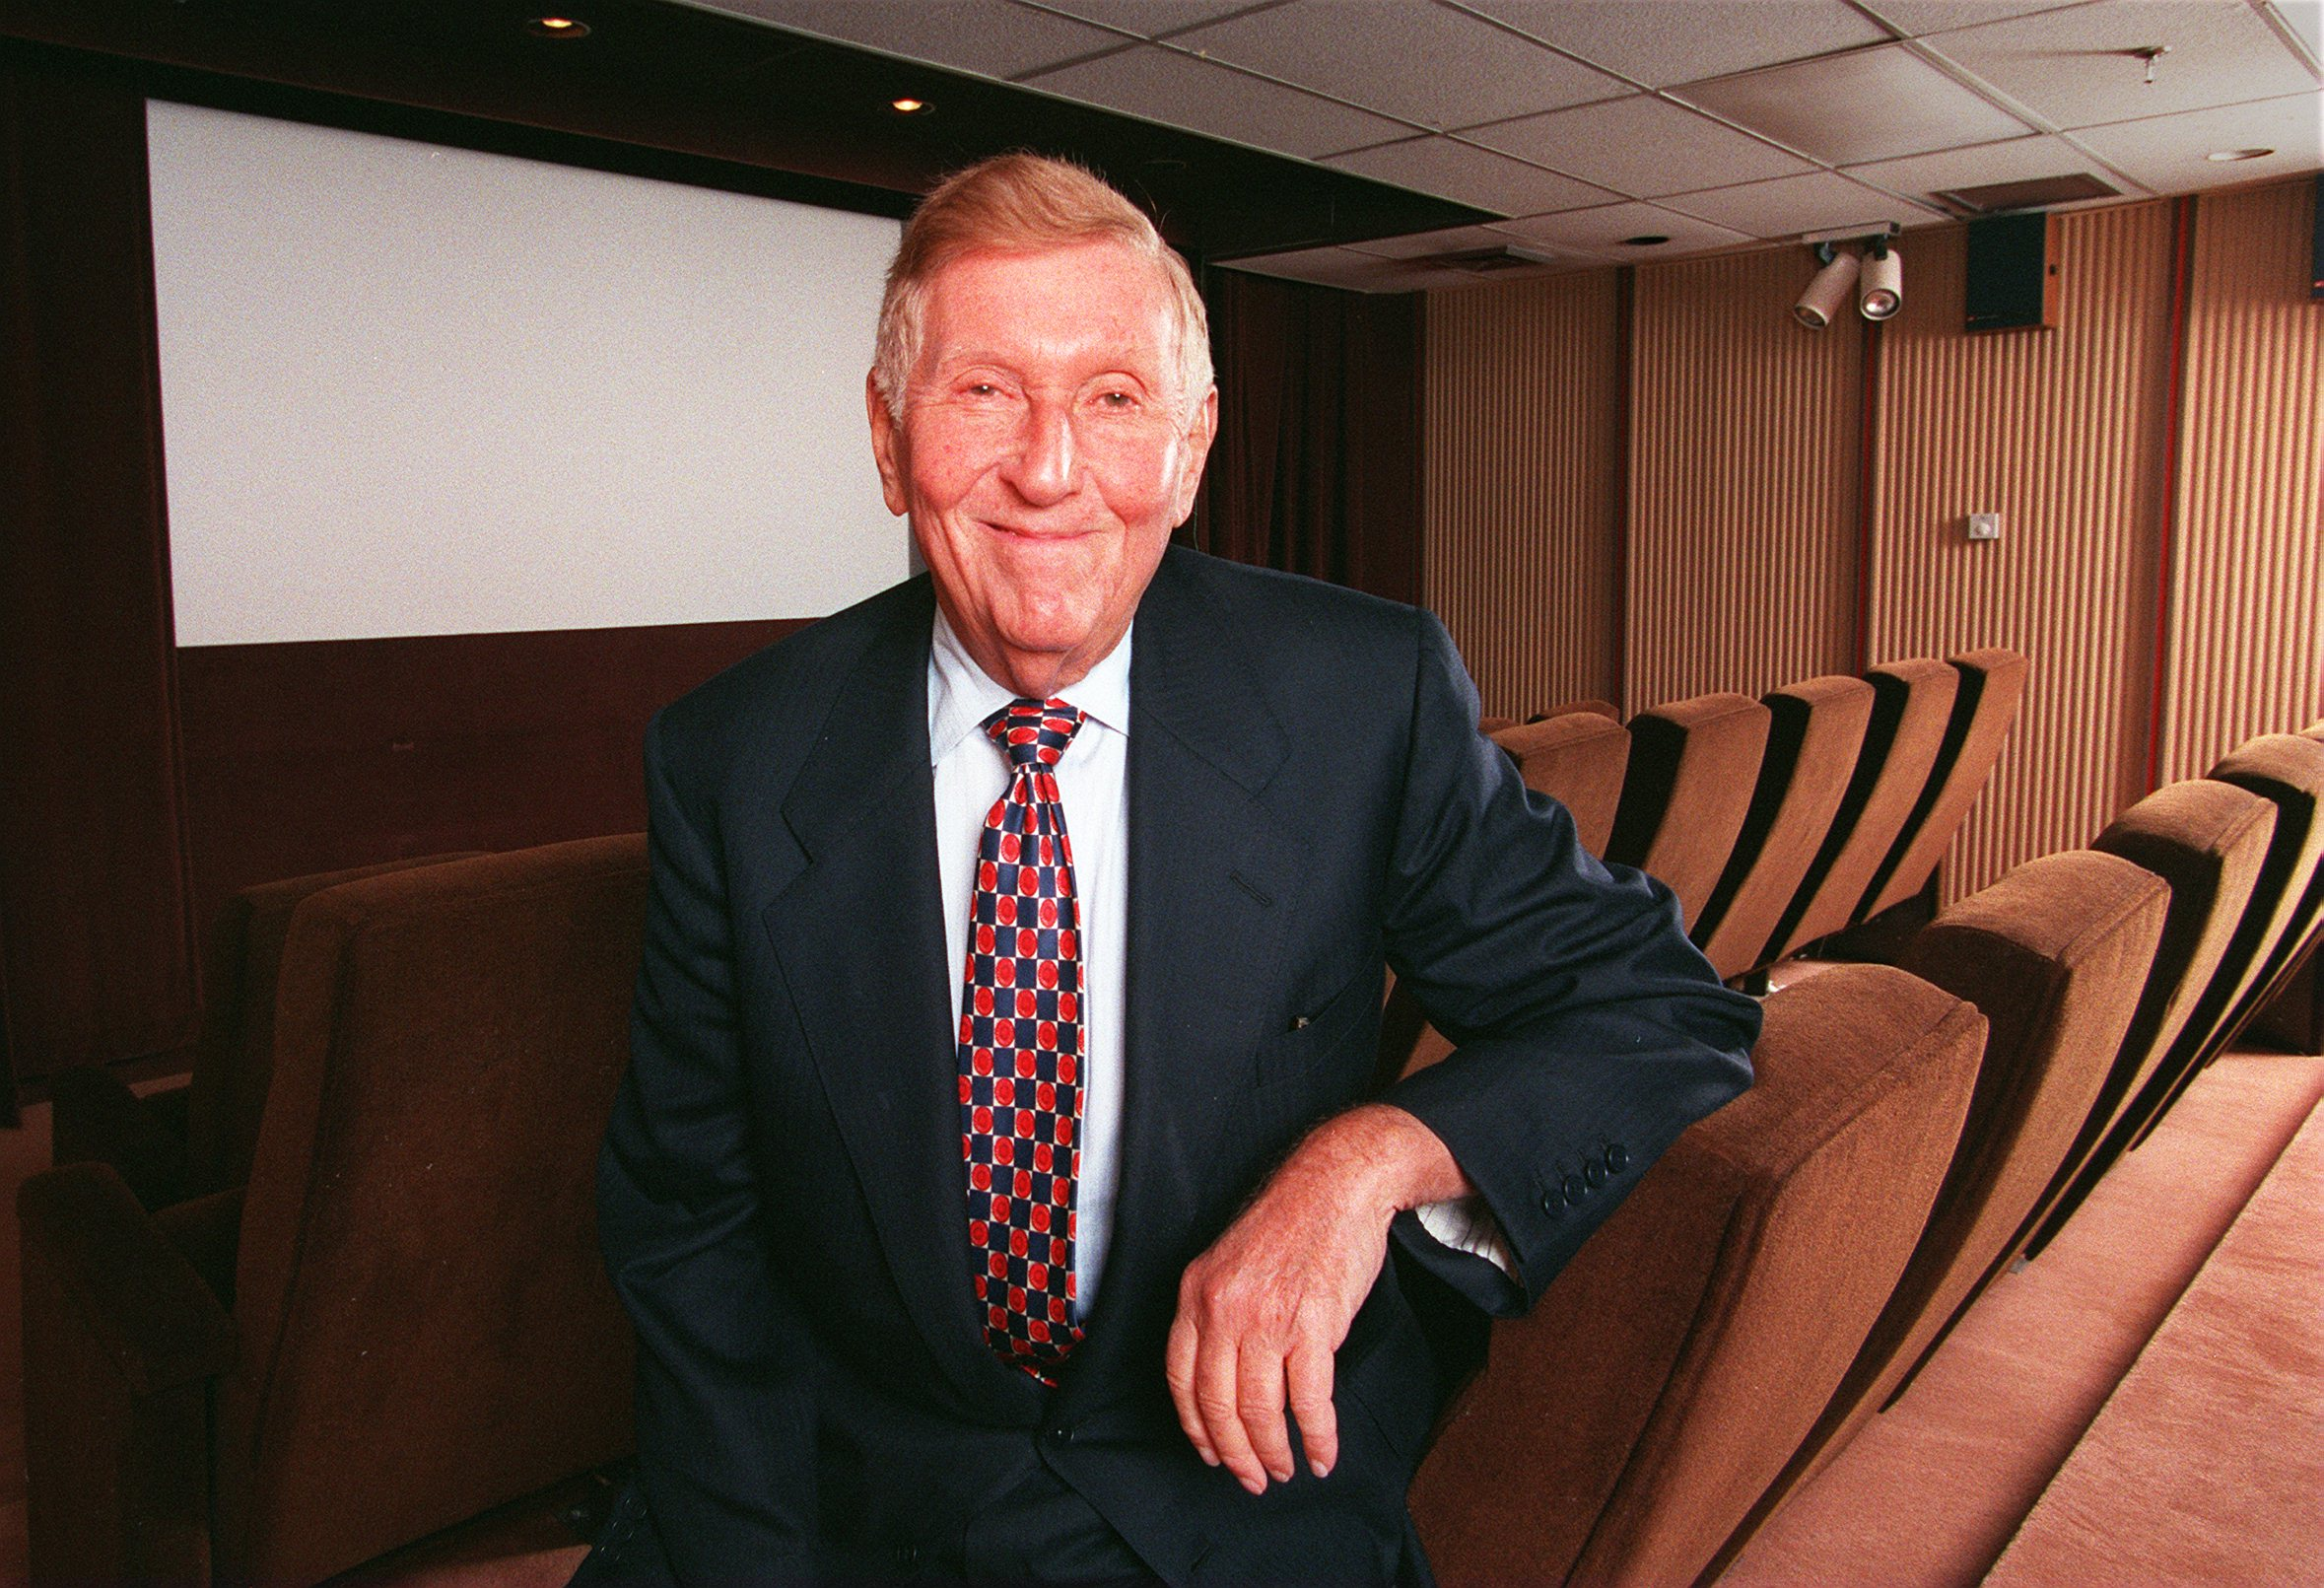 Viacom chairman Sumner Redstone in a screening room at National Amusements on October 2, 1998 in Dedham, Massachusetts.